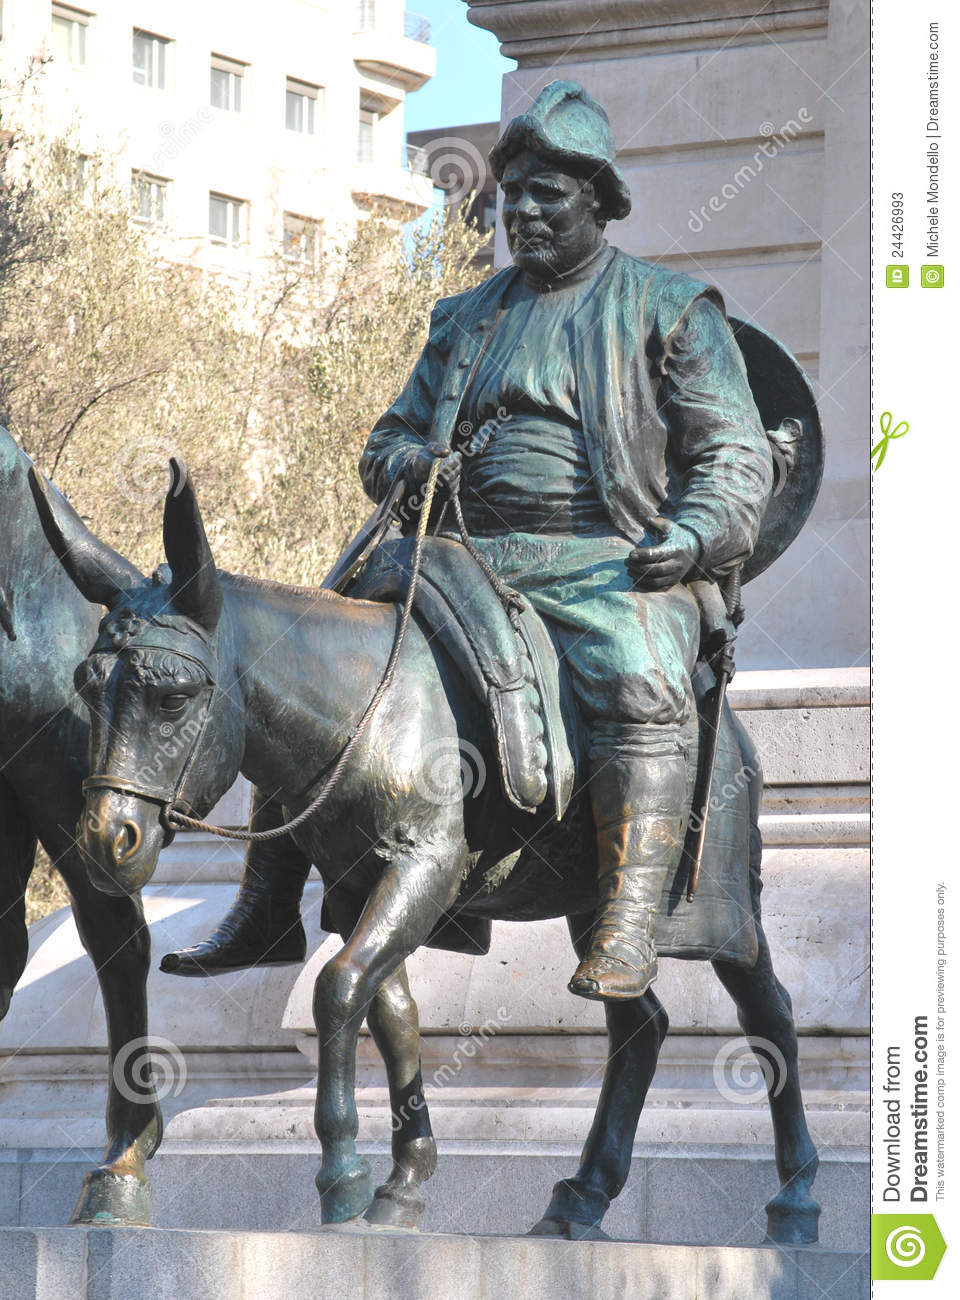 Download Sancho Panza, Madrid stock image. Image of stone, statue - 24426993